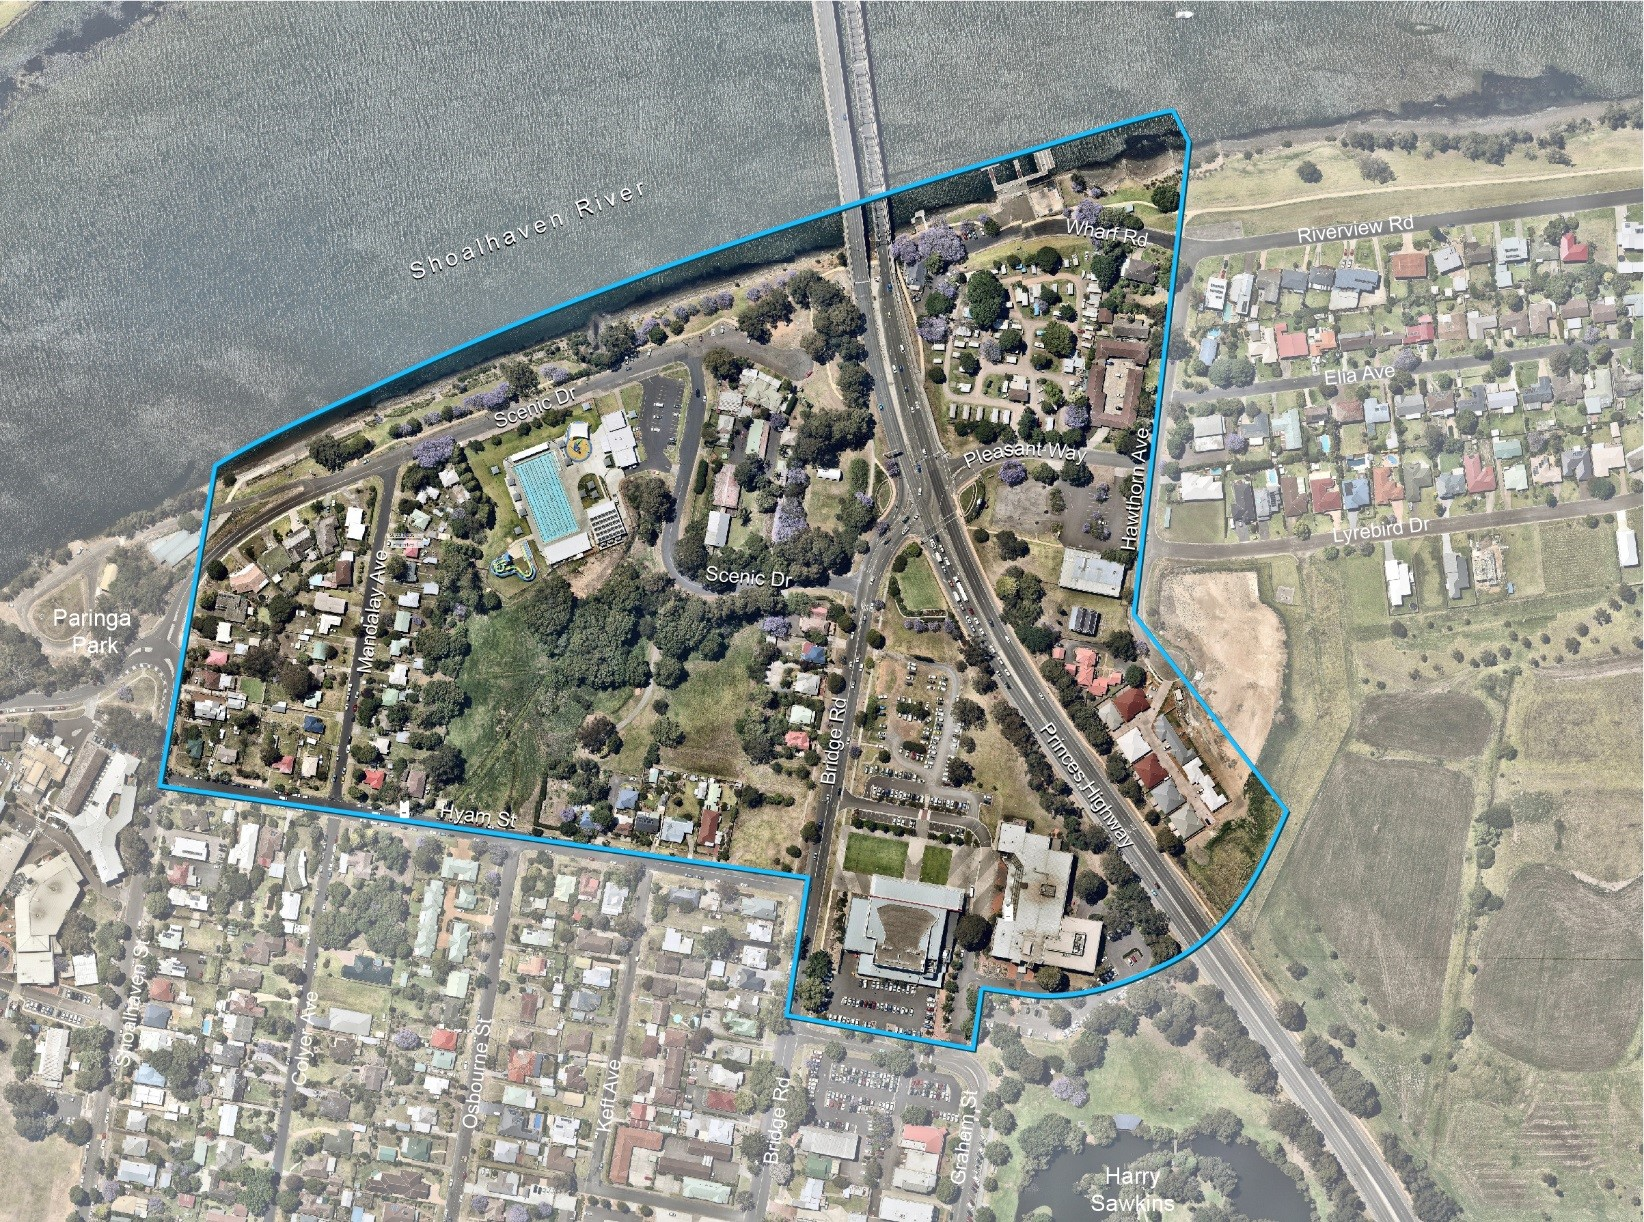 Nowra's Riverfront Precinct is bound by Scenic Drive to the north, Hawthorn Avenue to the east, Hyam Street and Graham Street to the south and Shoalhaven Street to the west (outlined in blue on the map).